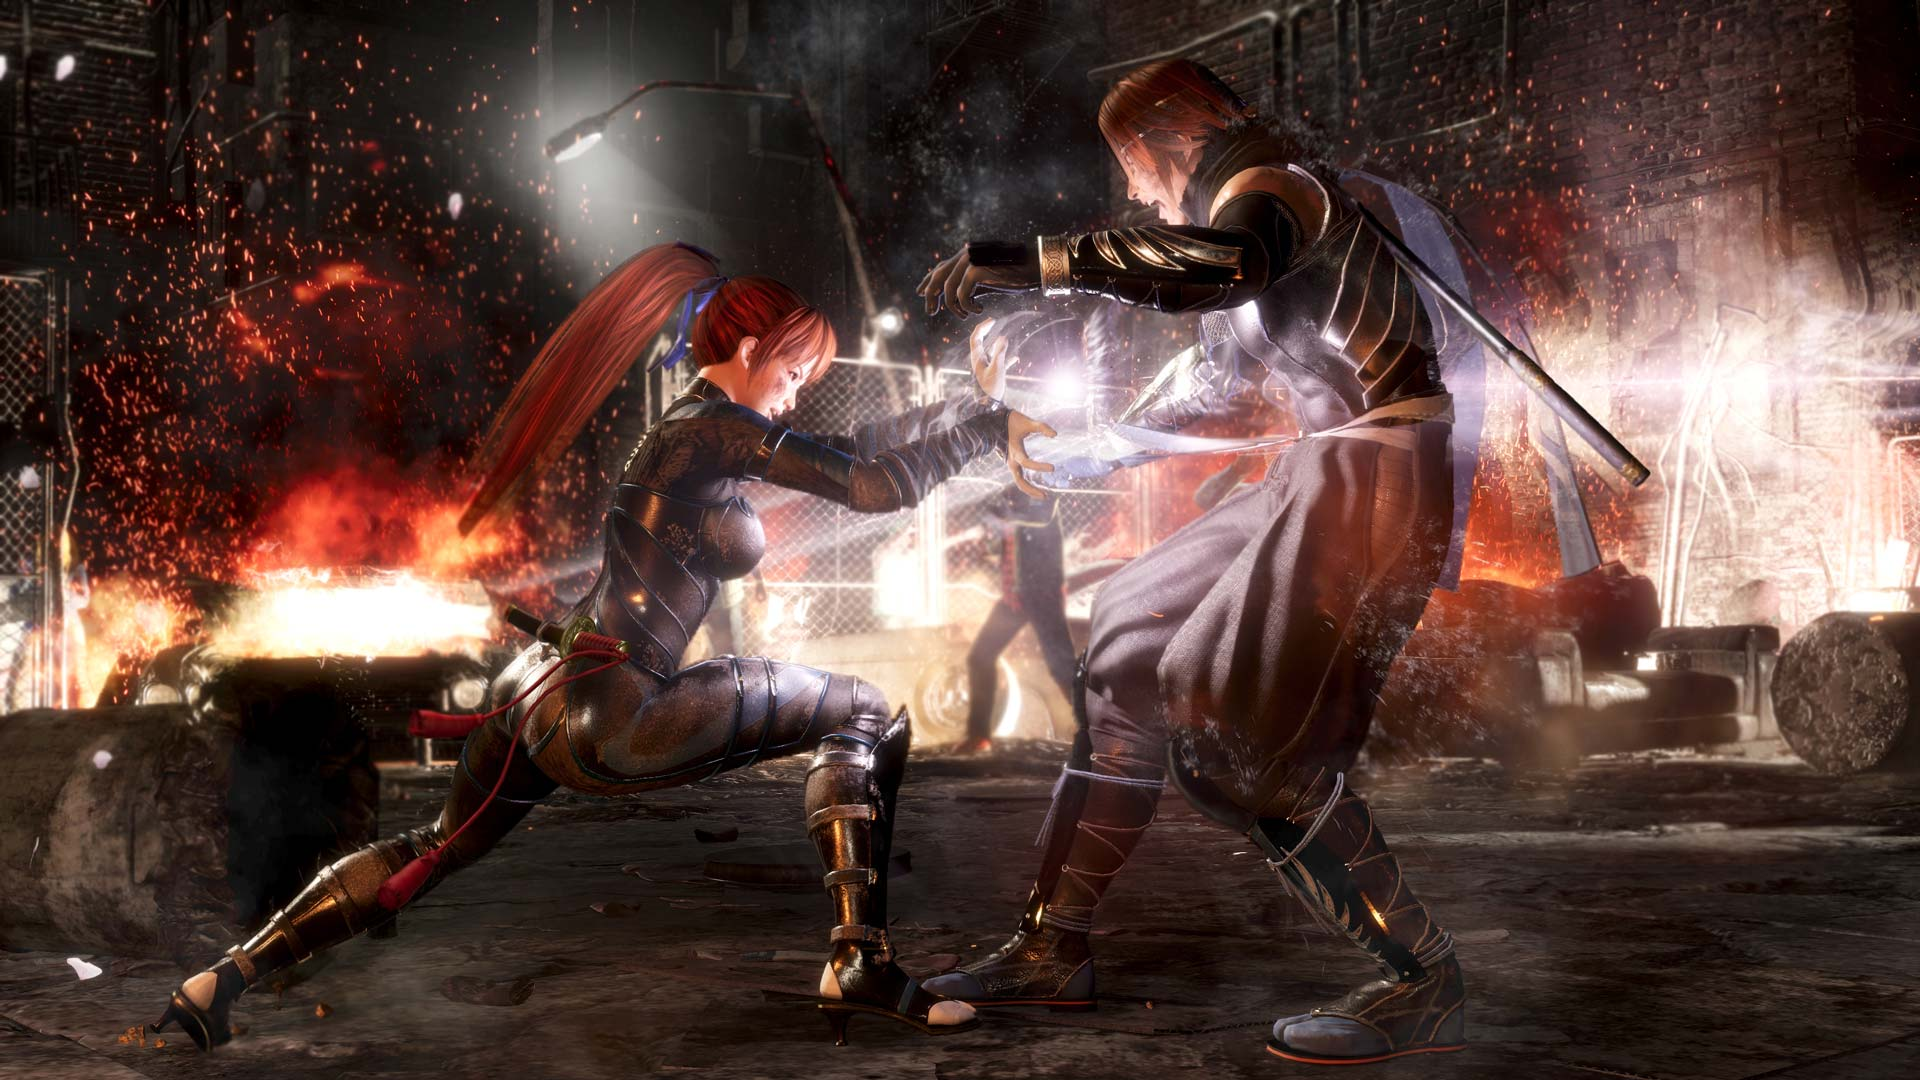 You can Counter Throw and Counter Hold in Dead or Alive 6.